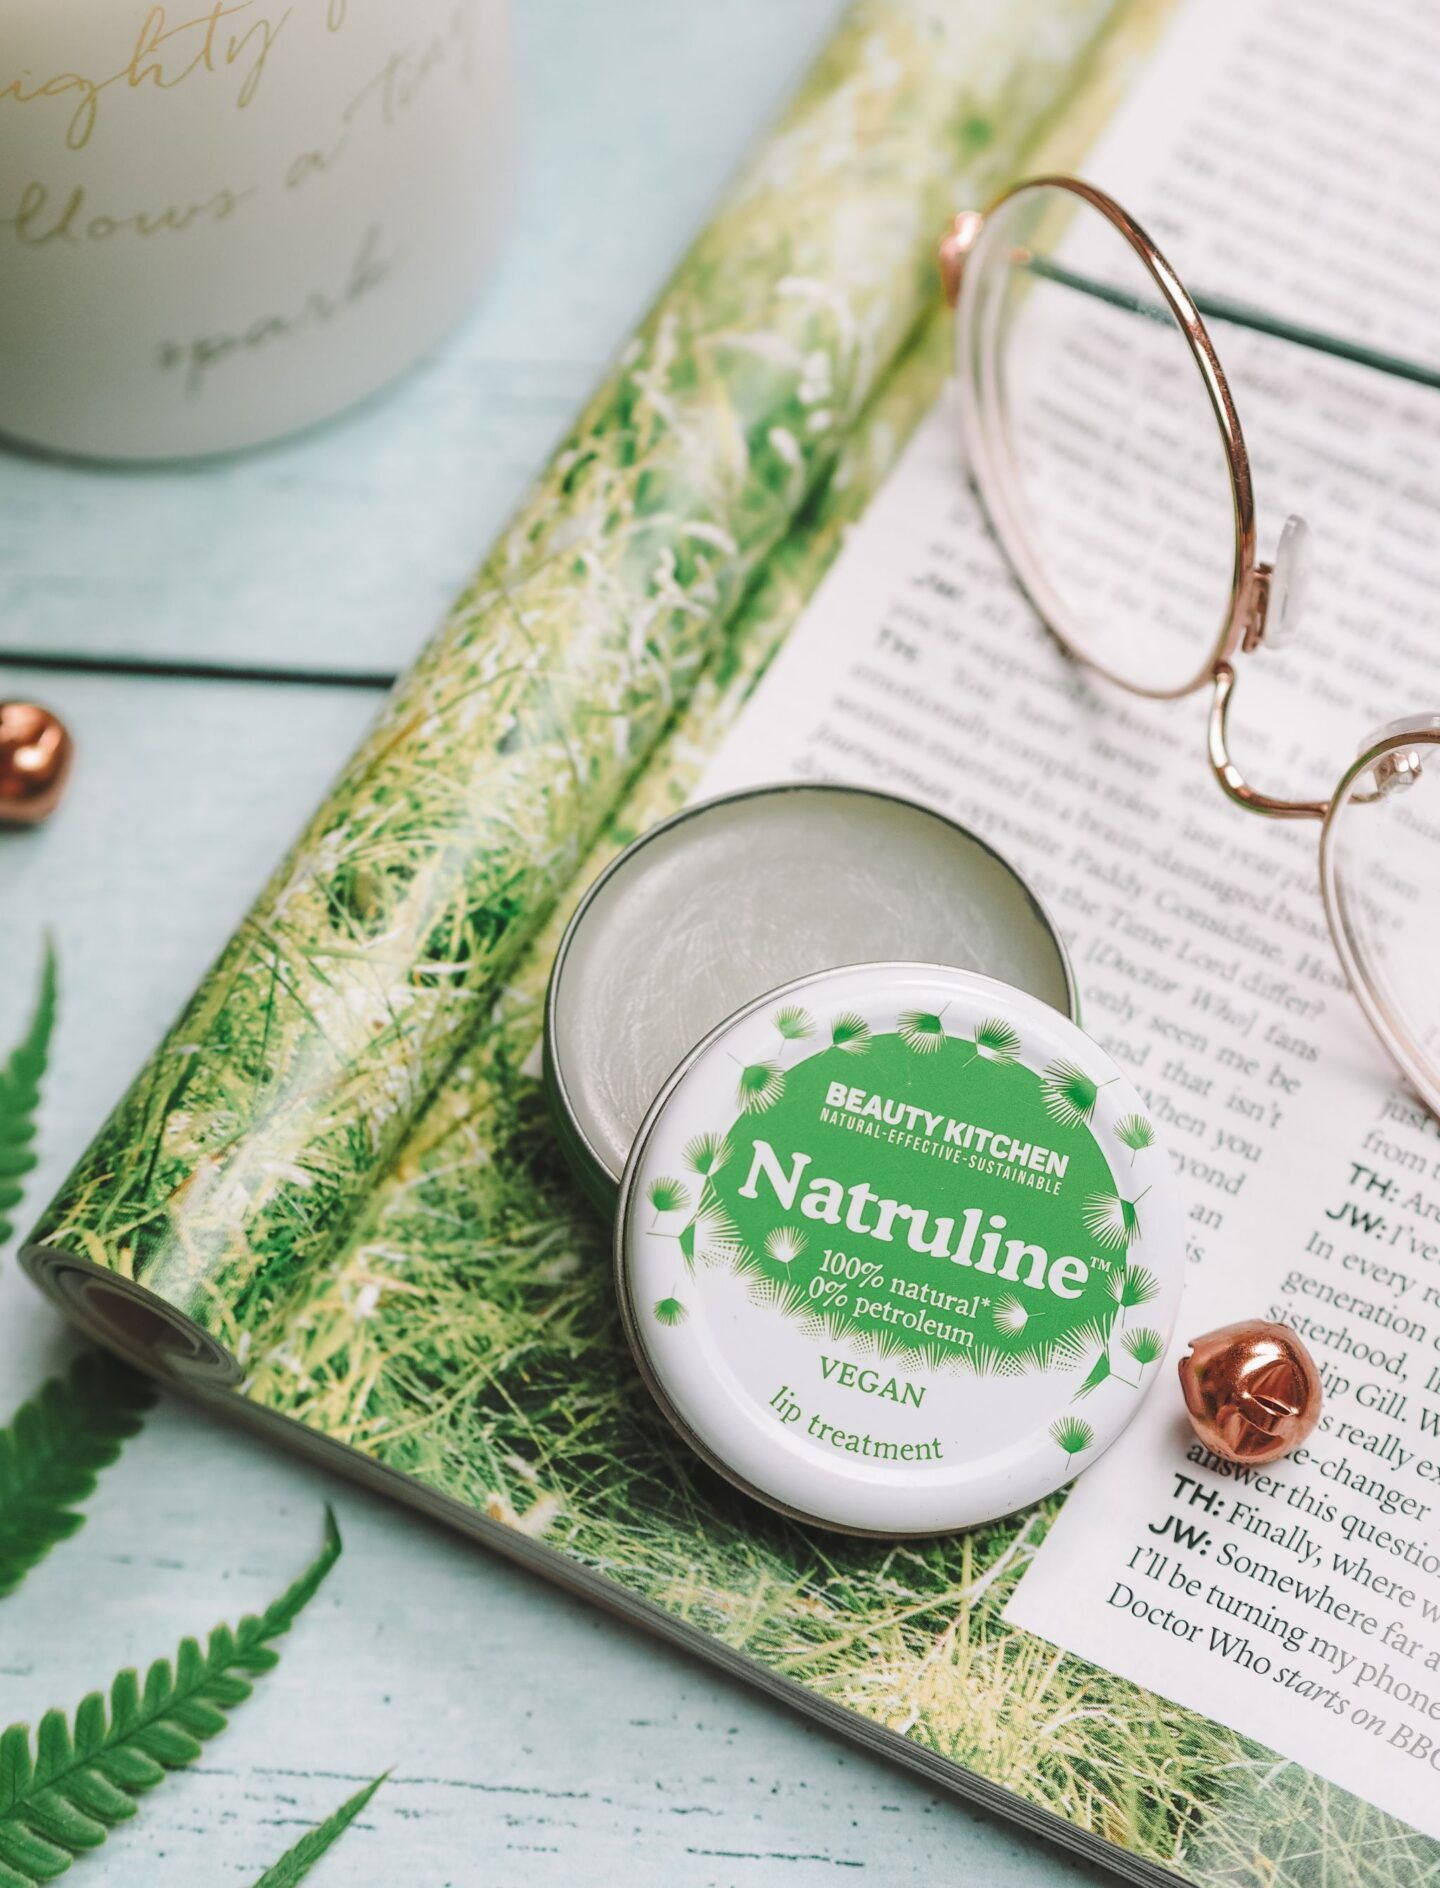 Vegan Petroleum Jelly Alternative: Beauty Kitchen's Natruline